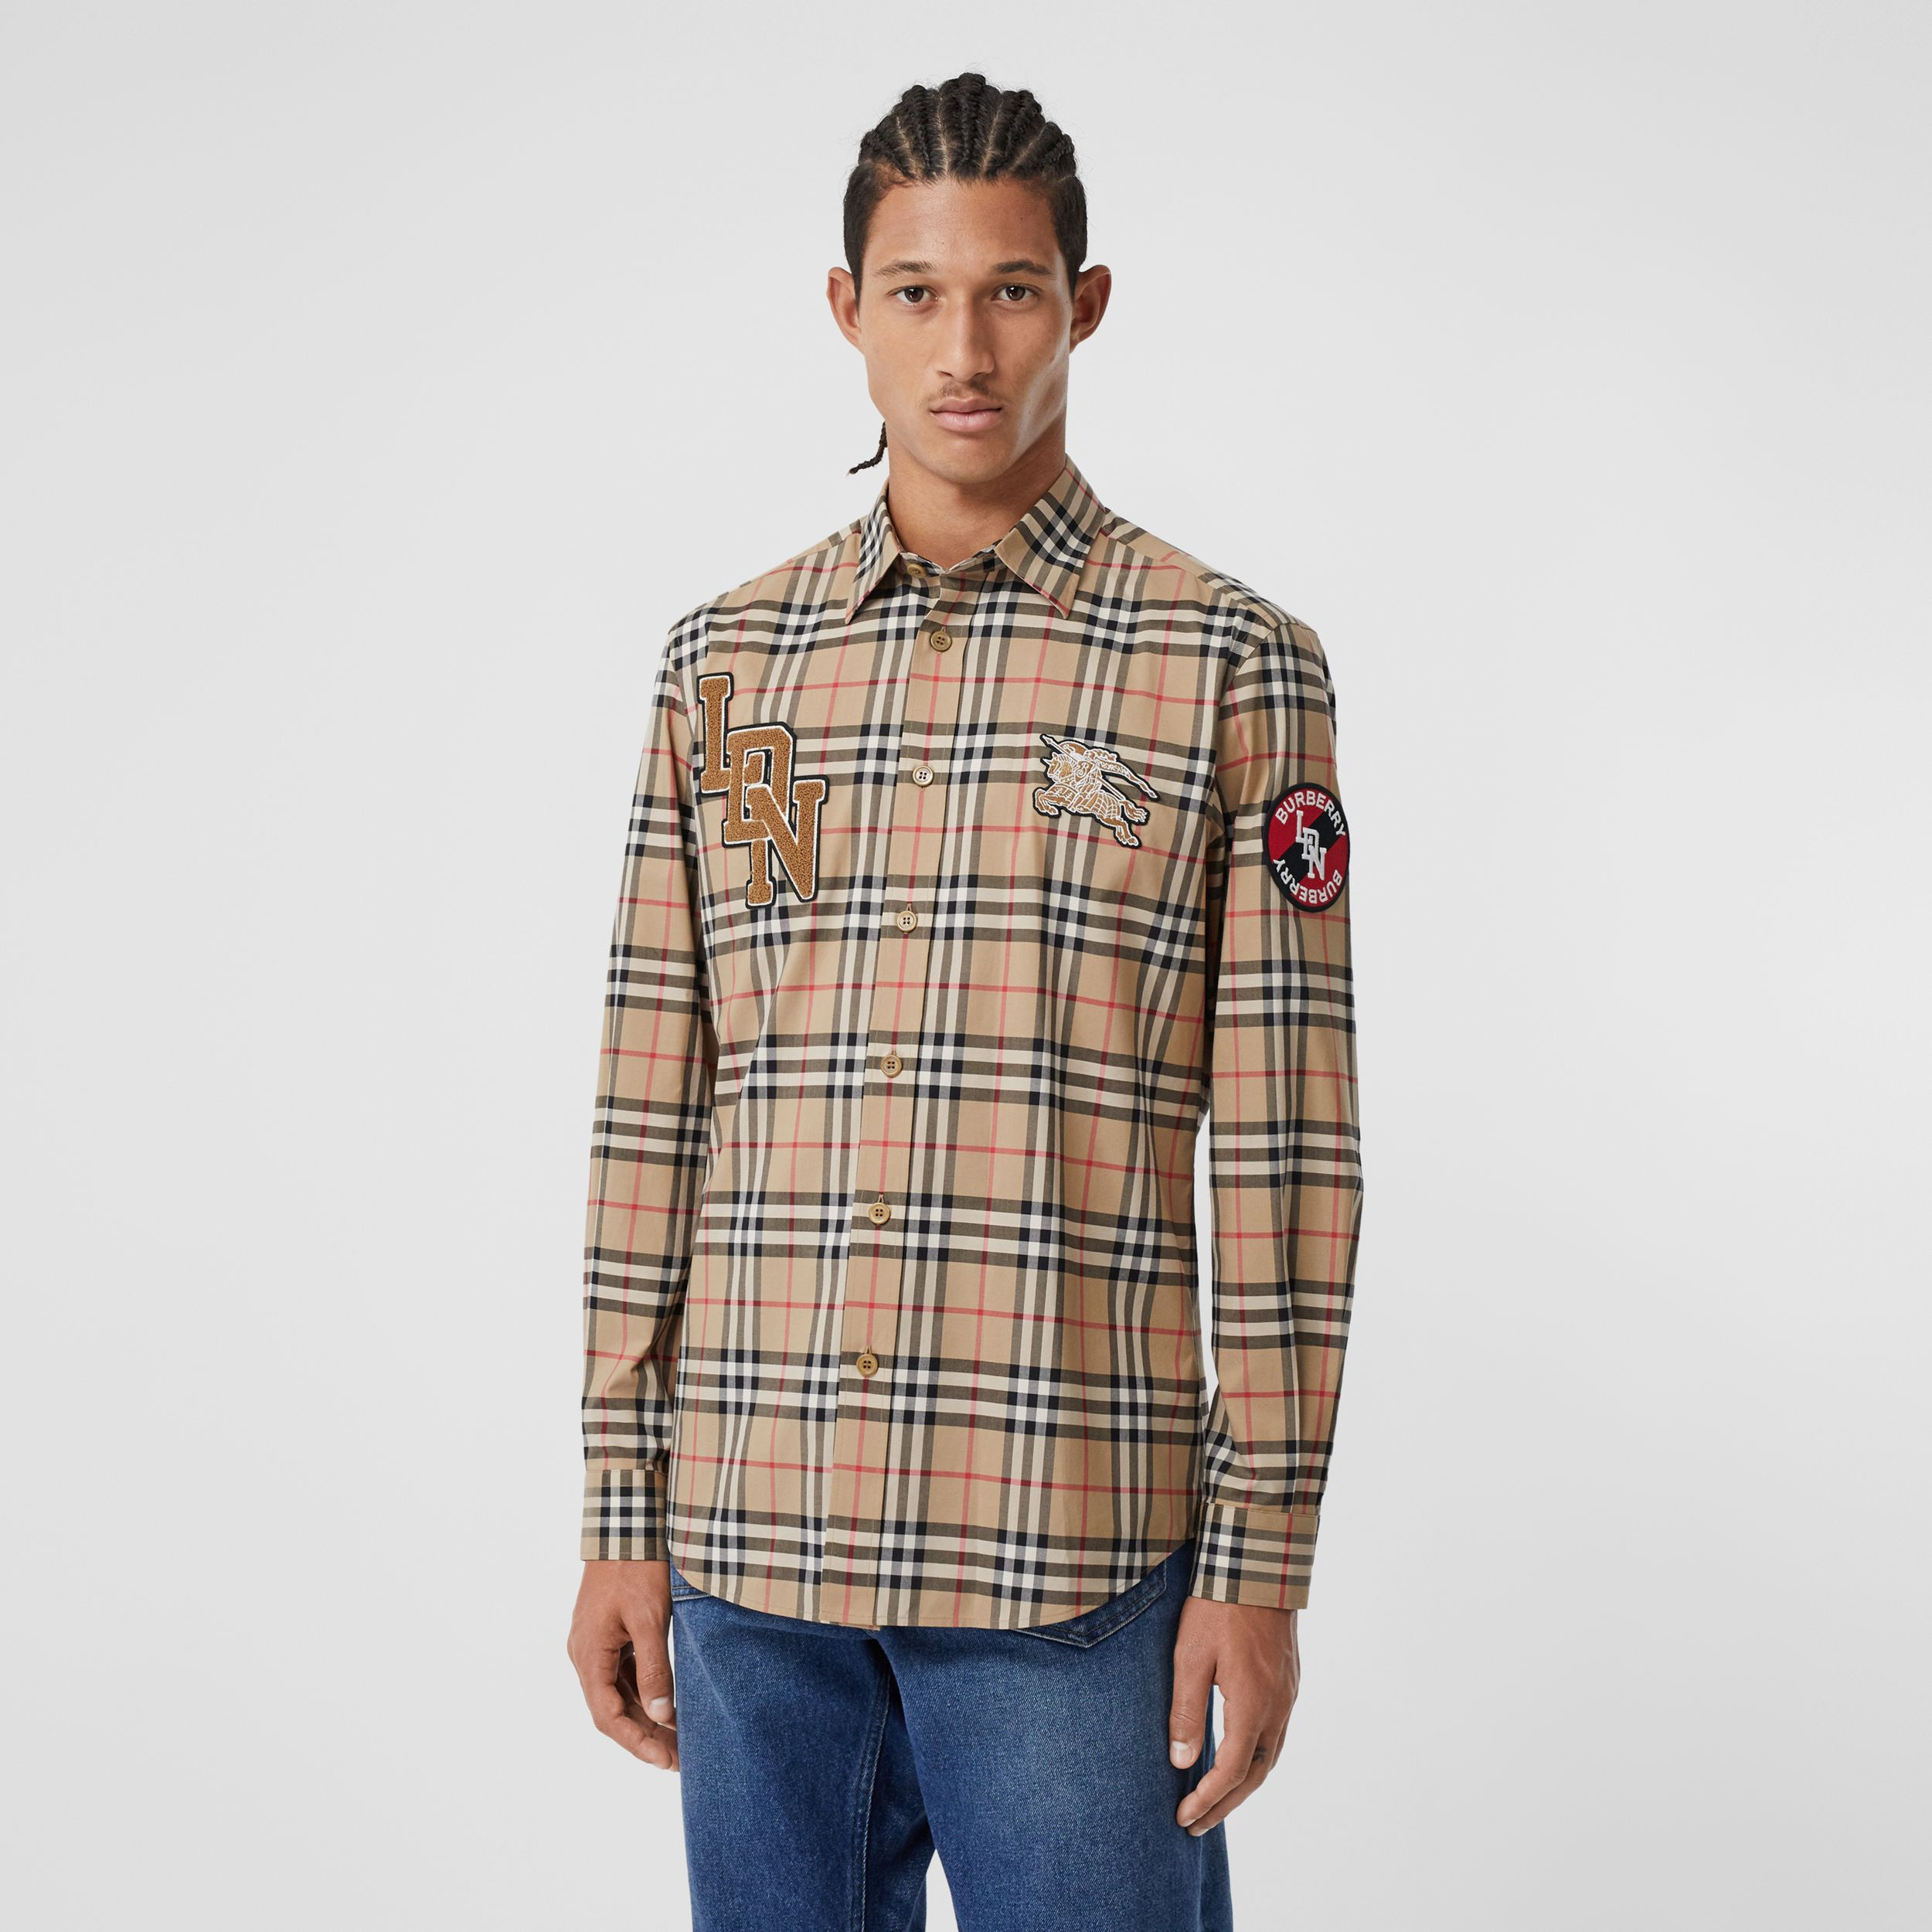 Classic Fit Logo Graphic Vintage Check Cotton Shirt in Archive Beige - Men | Burberry - 1